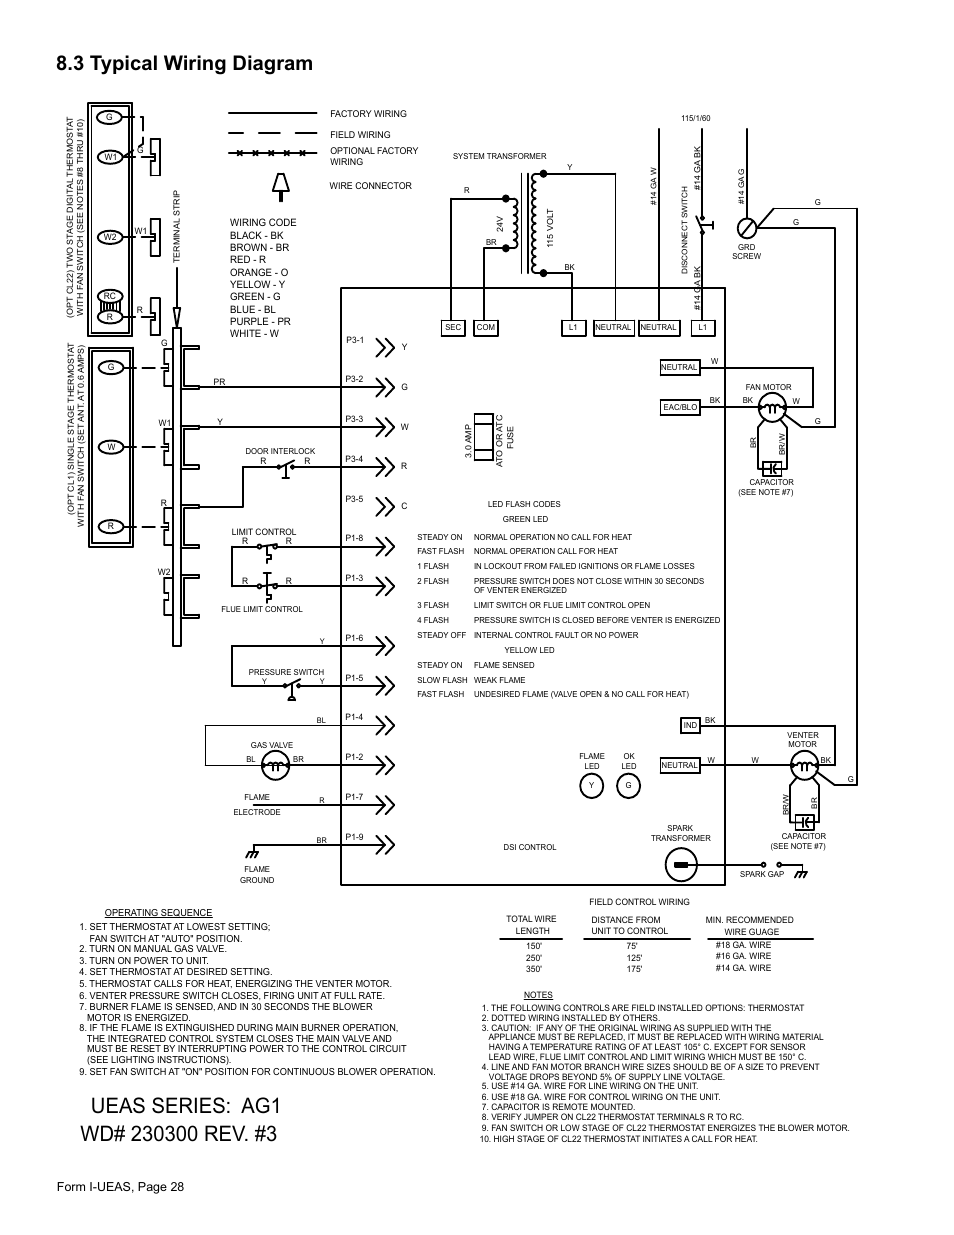 medium resolution of 3 typical wiring diagram form i ueas page 28 reznor old gas heater wiring schematic gas unit heater wiring diagrams